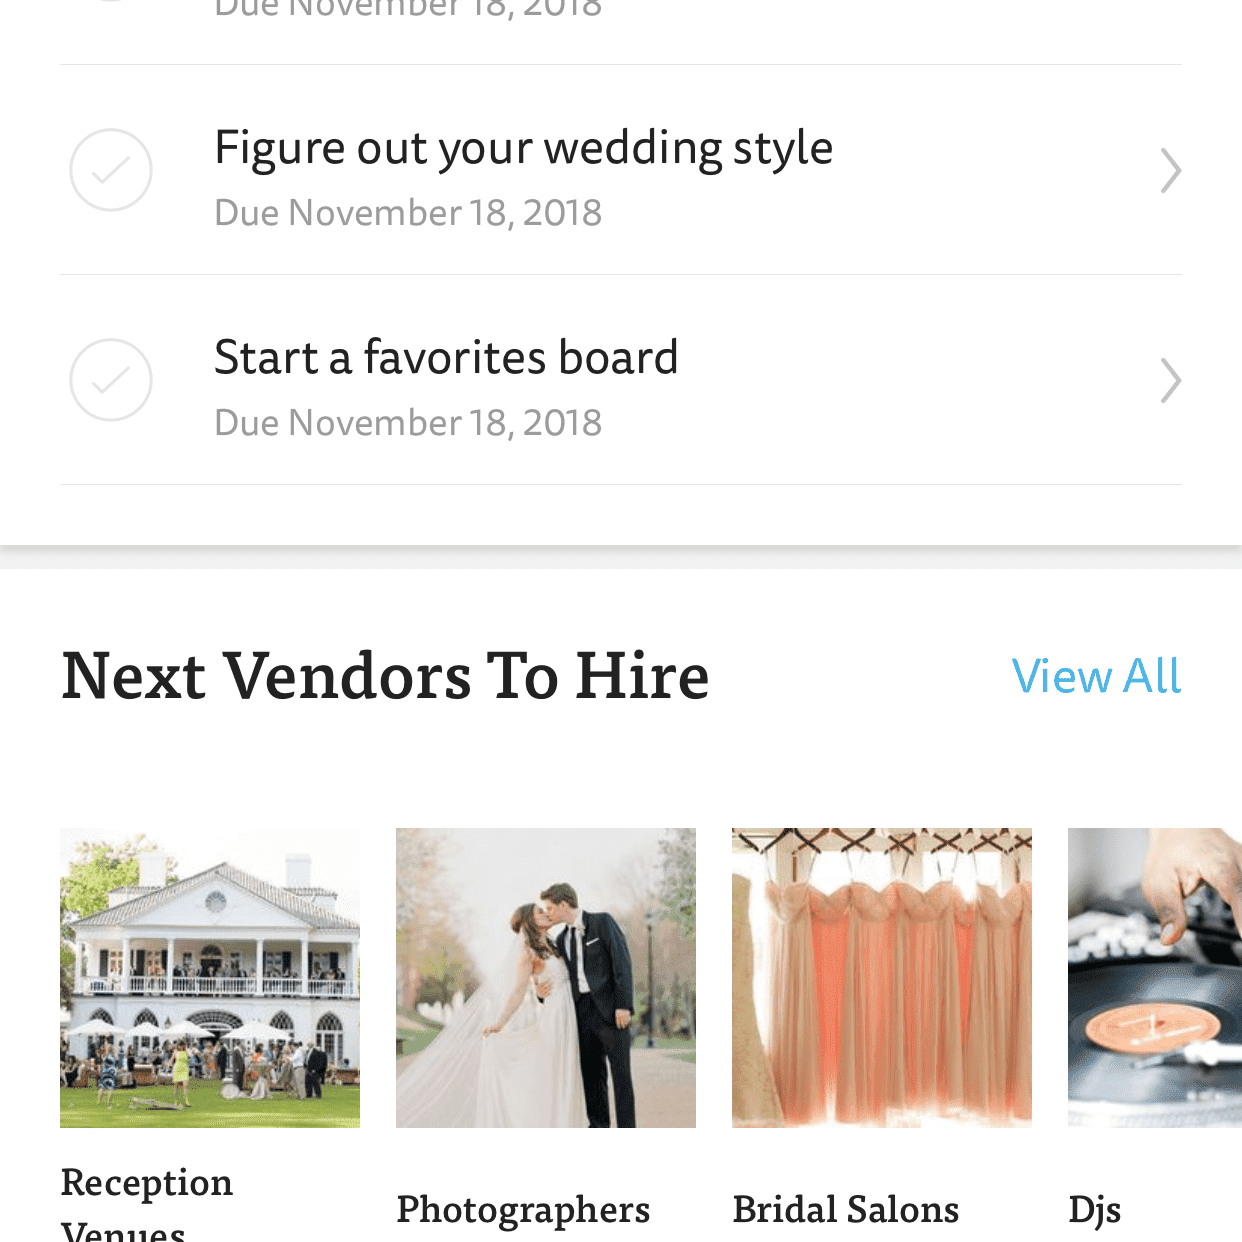 A wedding checklist on The Knot Wedding app